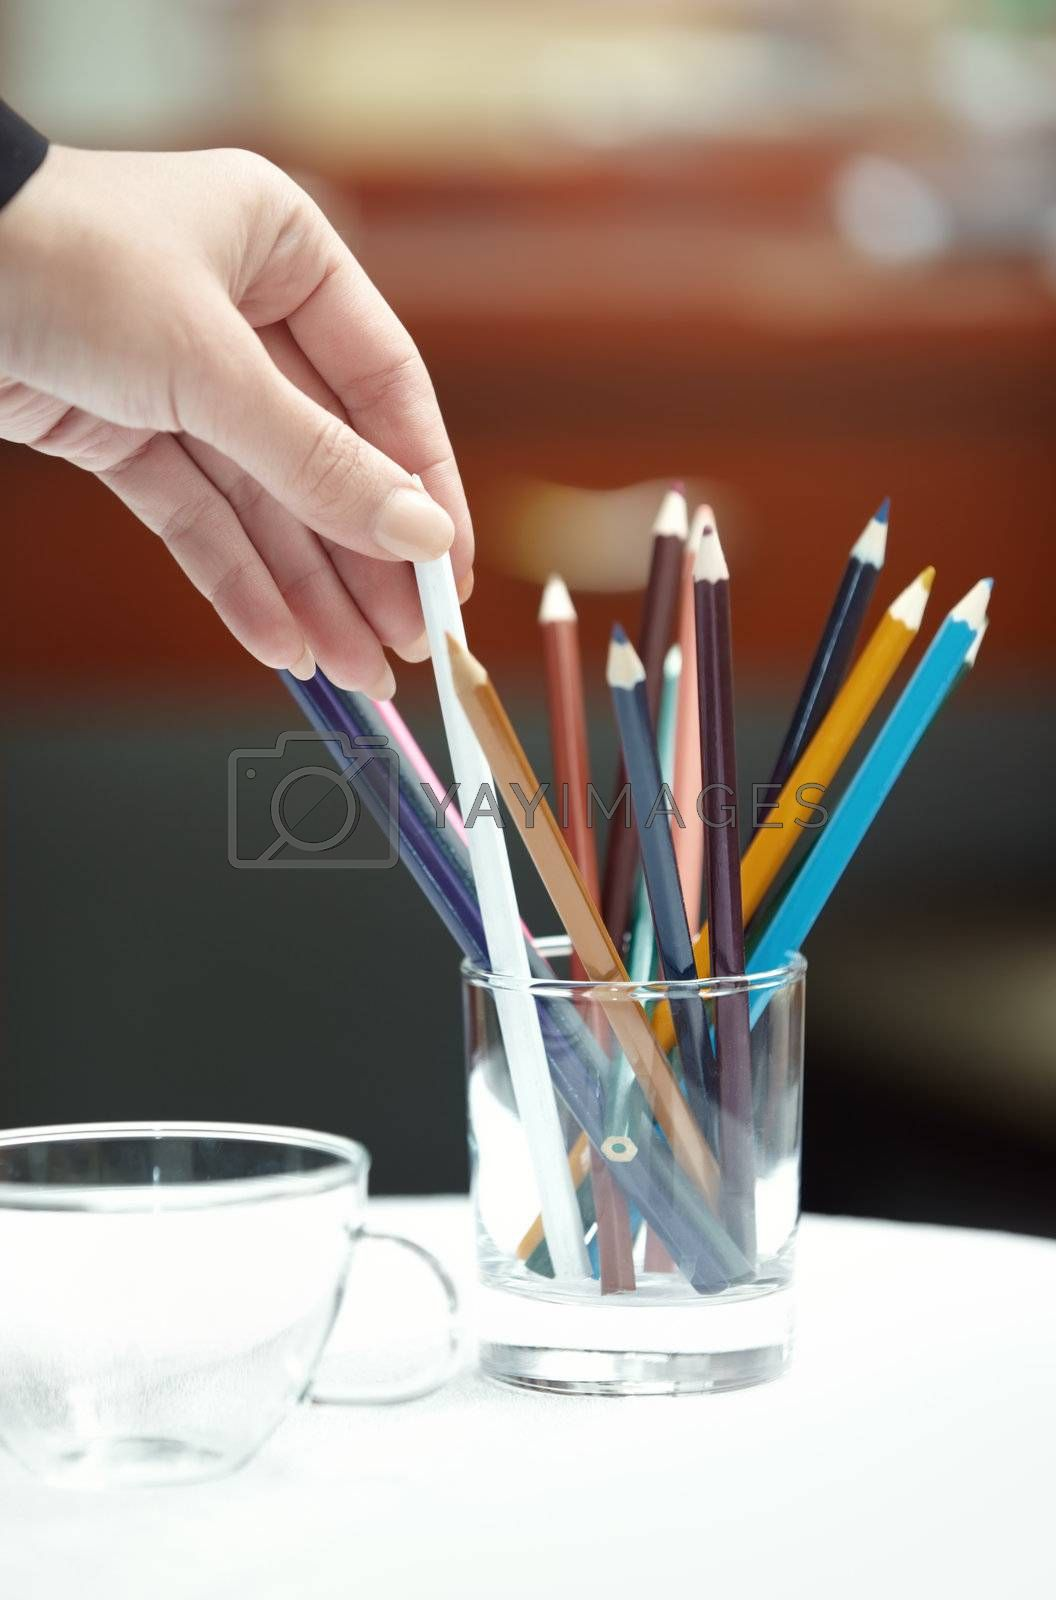 Human hand selecting colored pencil. Vertical photo